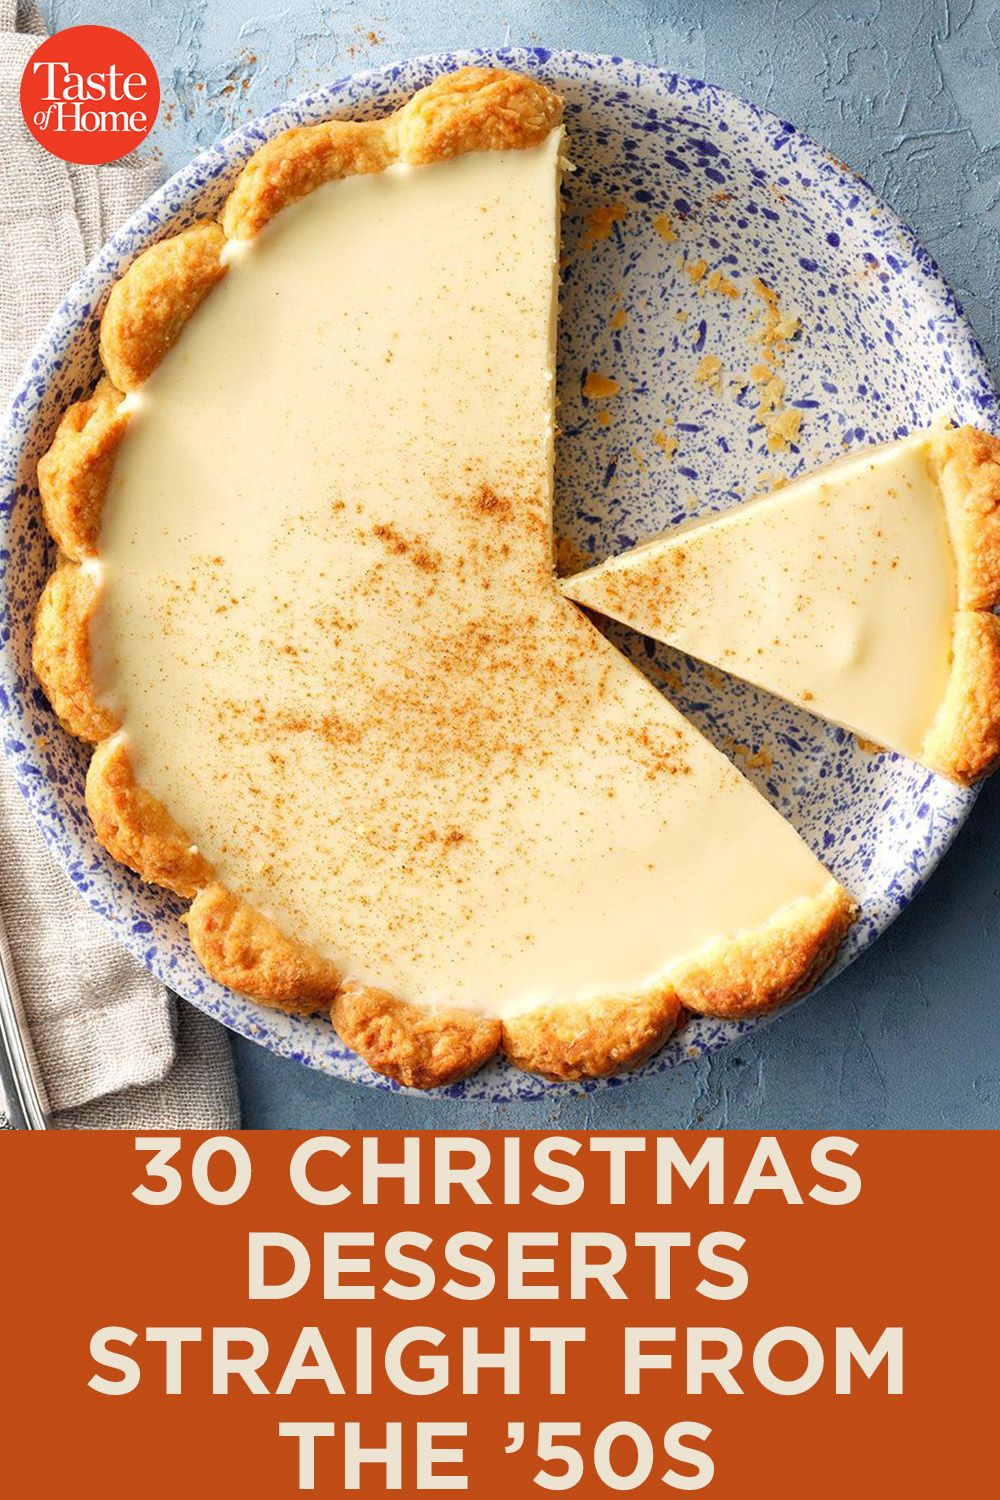 30 Christmas Desserts Straight from the '50s #christmasdesserts